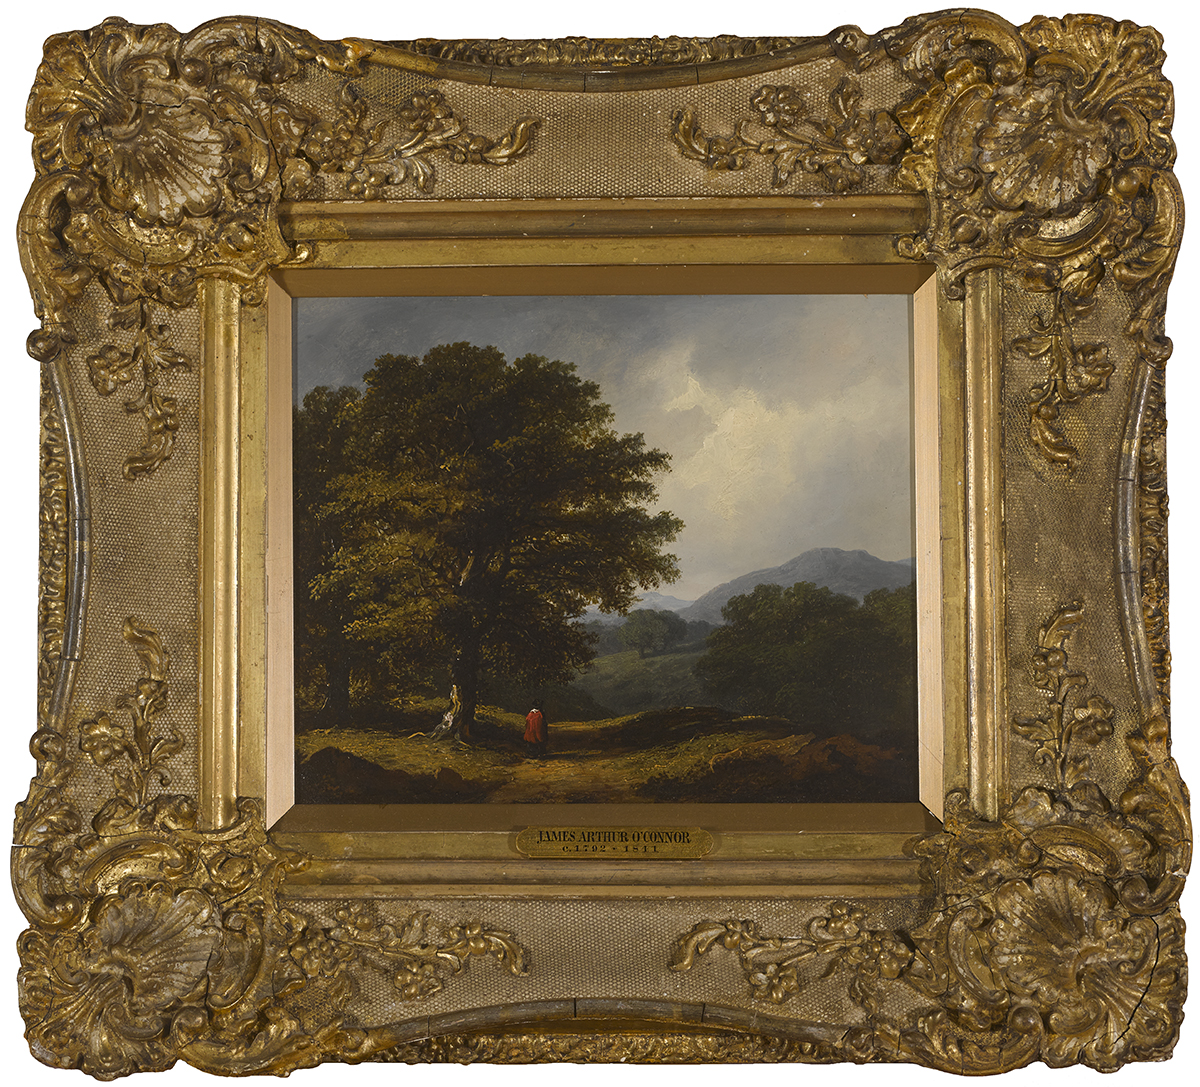 James Arthur O'Connor (1792-1841)FIGURE IN A WOODED LANDSCAPE, 1839 oil on panel signed and dated - Image 2 of 3